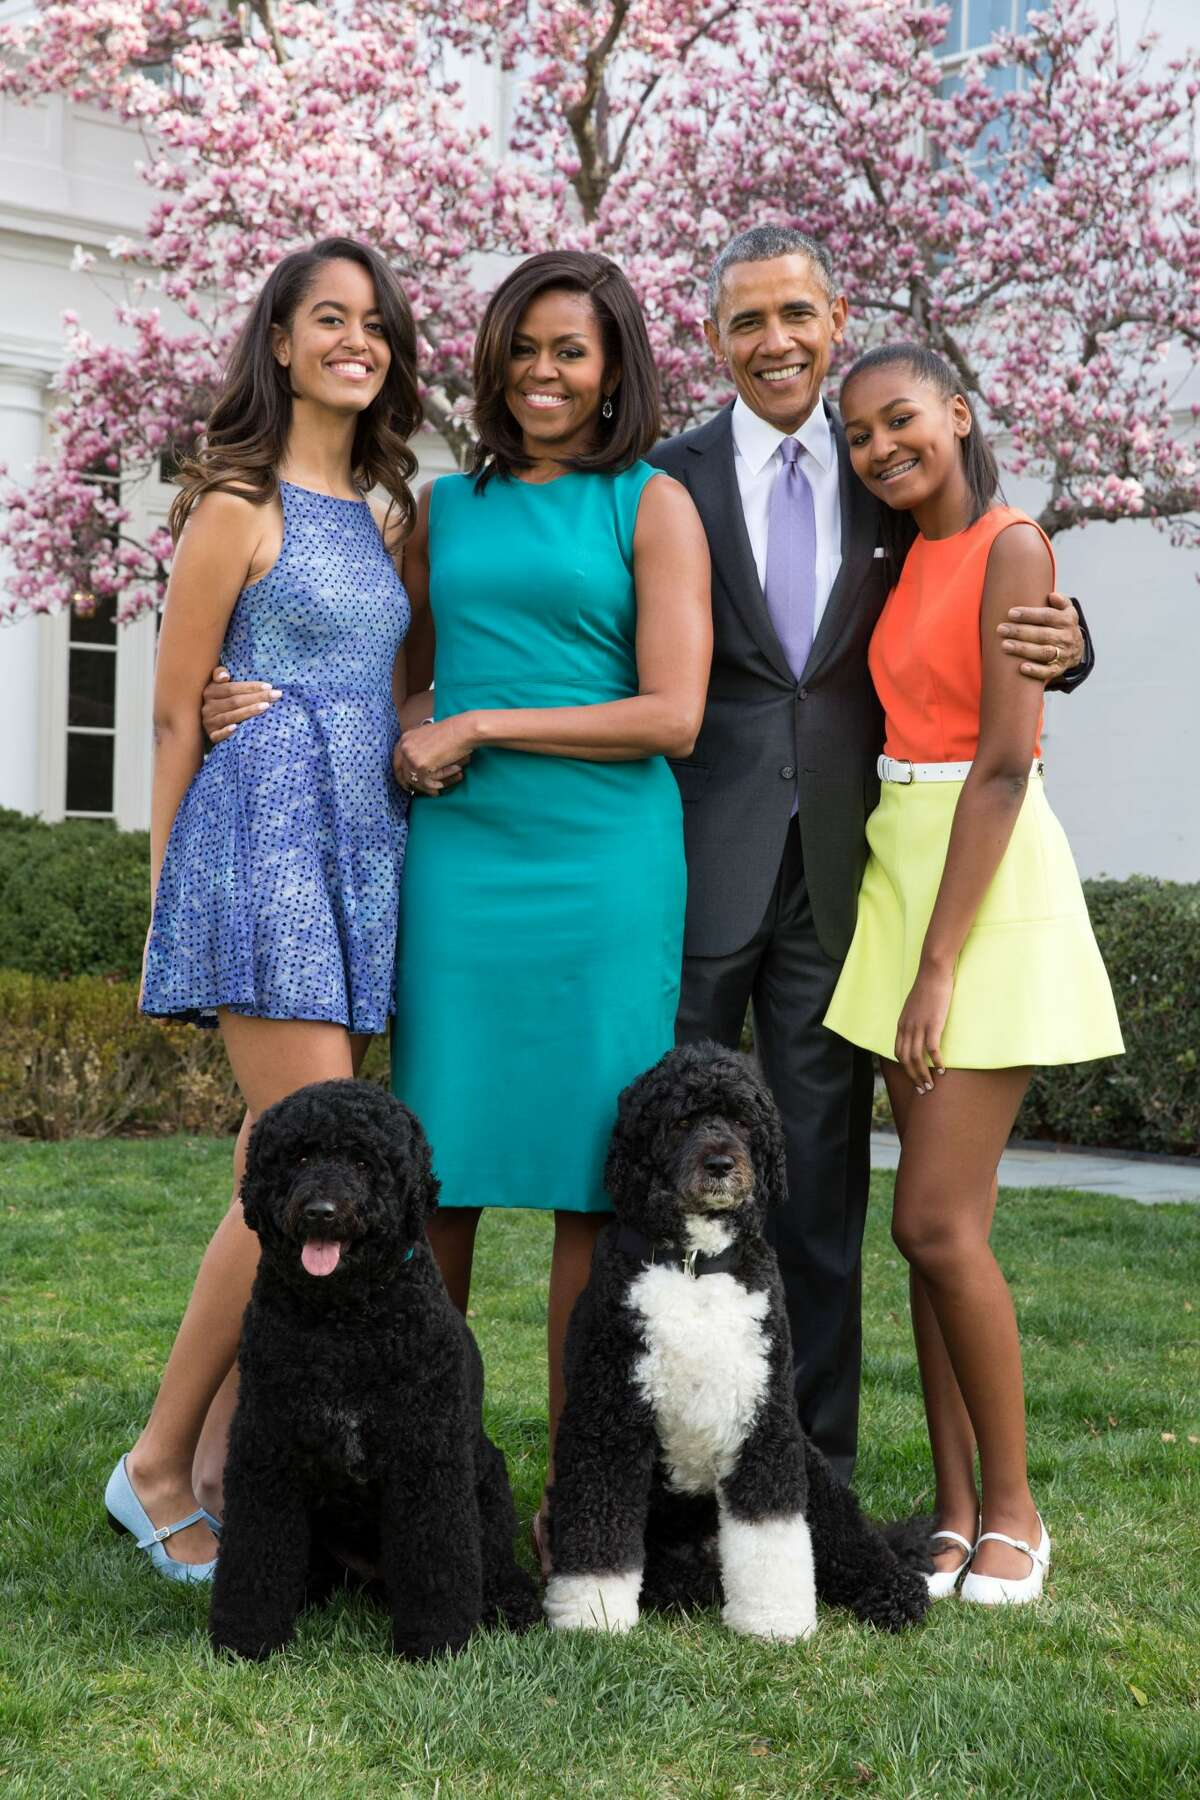 President Barack Obama, First Lady Michelle Obama, and daughters Malia (L) and Sasha (R) pose for a family portrait with their pets Bo and Sunny in the Rose Garden of the White House on Easter Sunday, April 5, 2015 in Washington, DC.